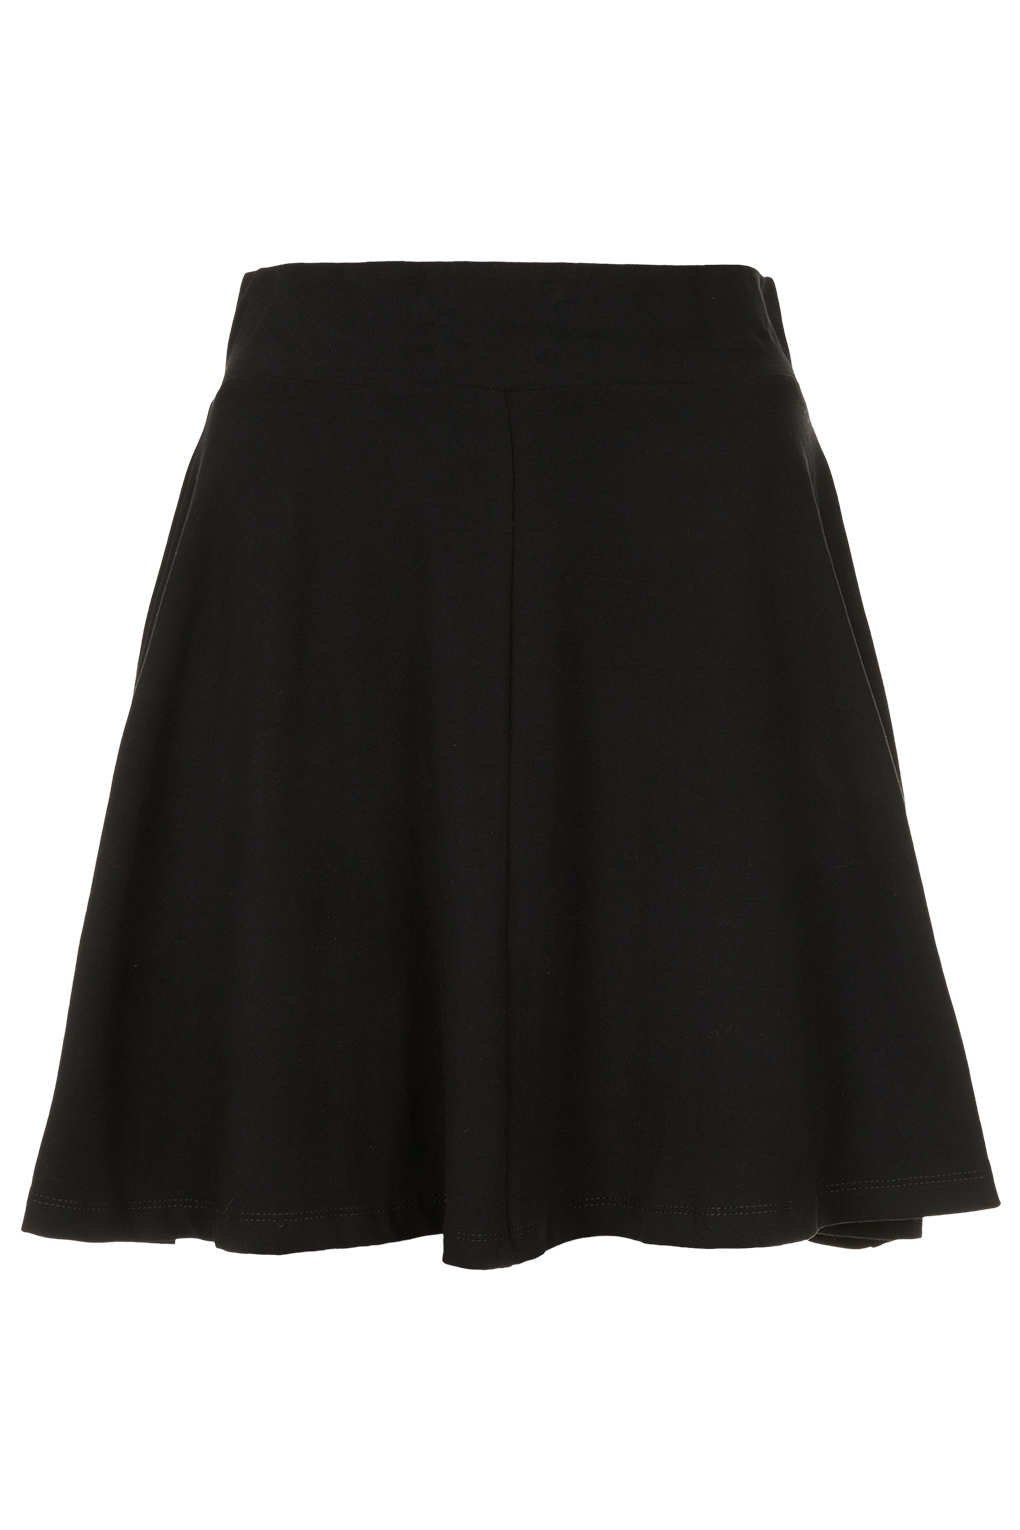 Black High Waist Skater Skirt - Skirts - from TOPSHOP